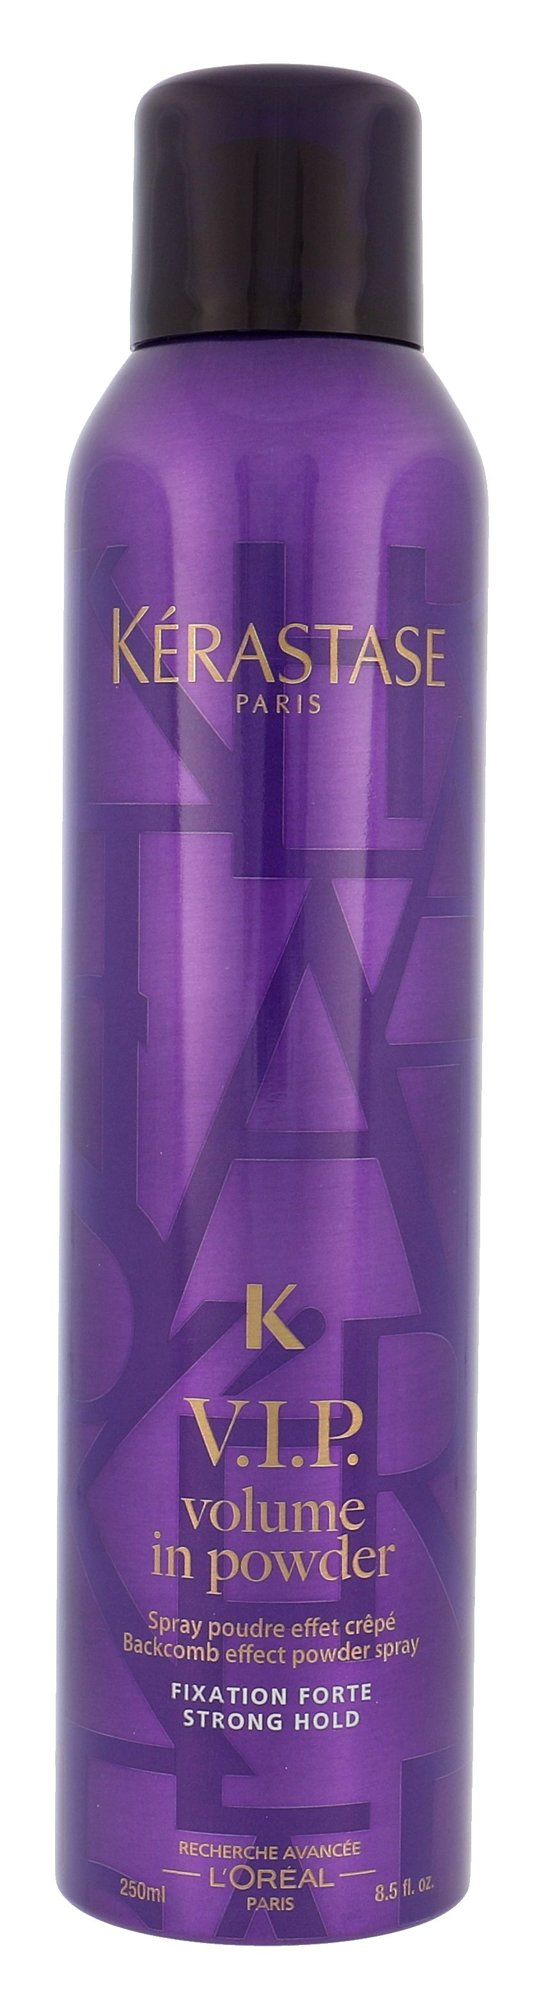 Kérastase VIP Cosmetic 250ml Strong Hold